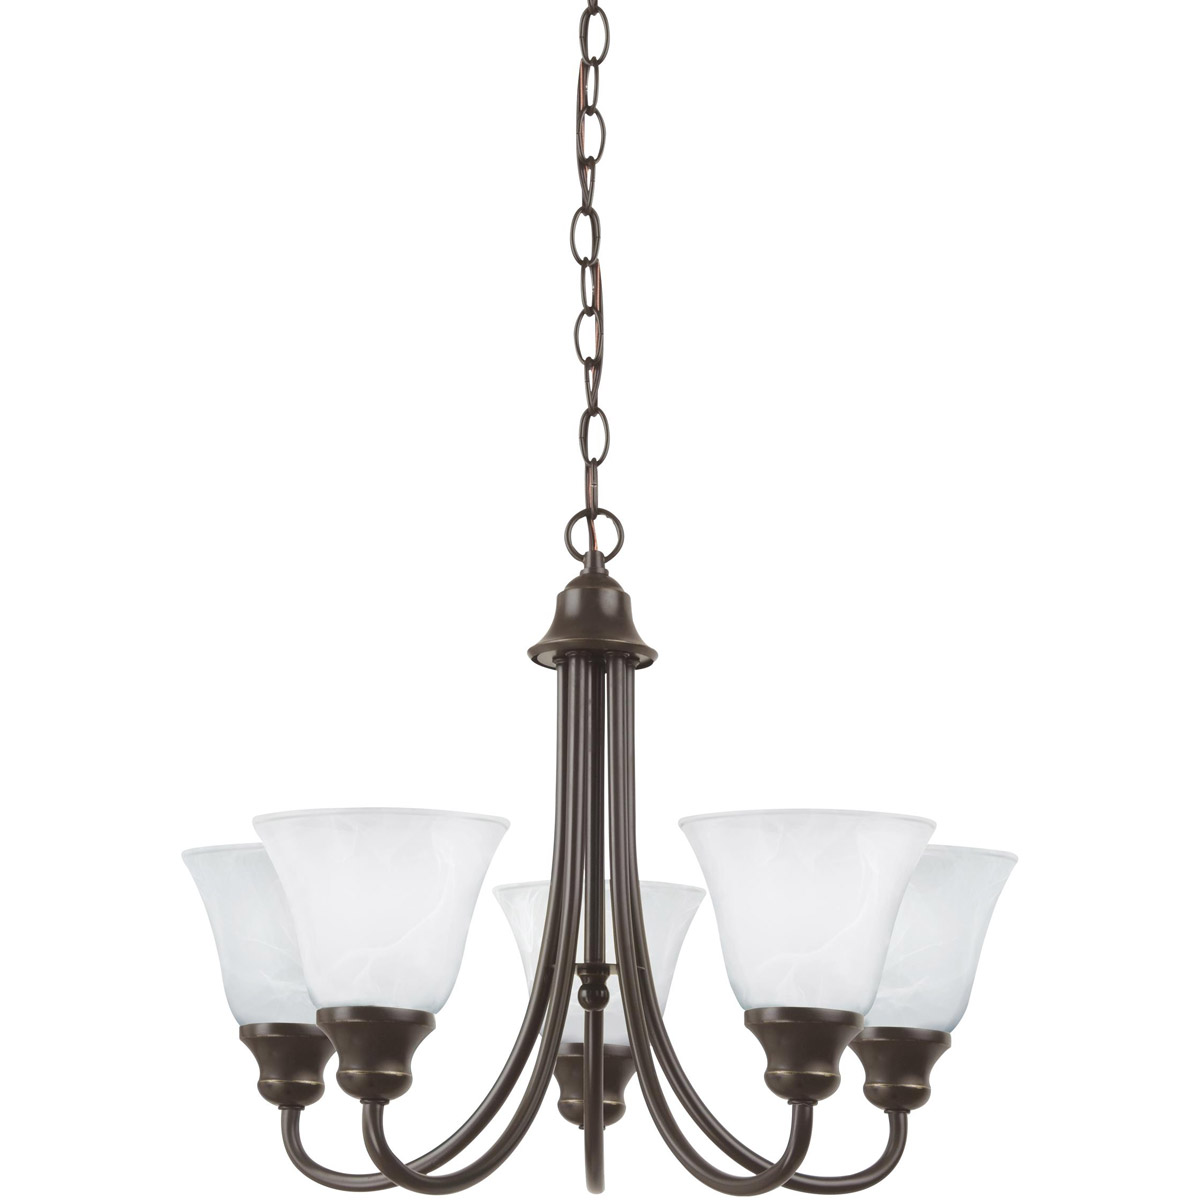 Sea Gull Lighting Windgate 5 Light Chandelier in Heirloom Bronze 35940-782